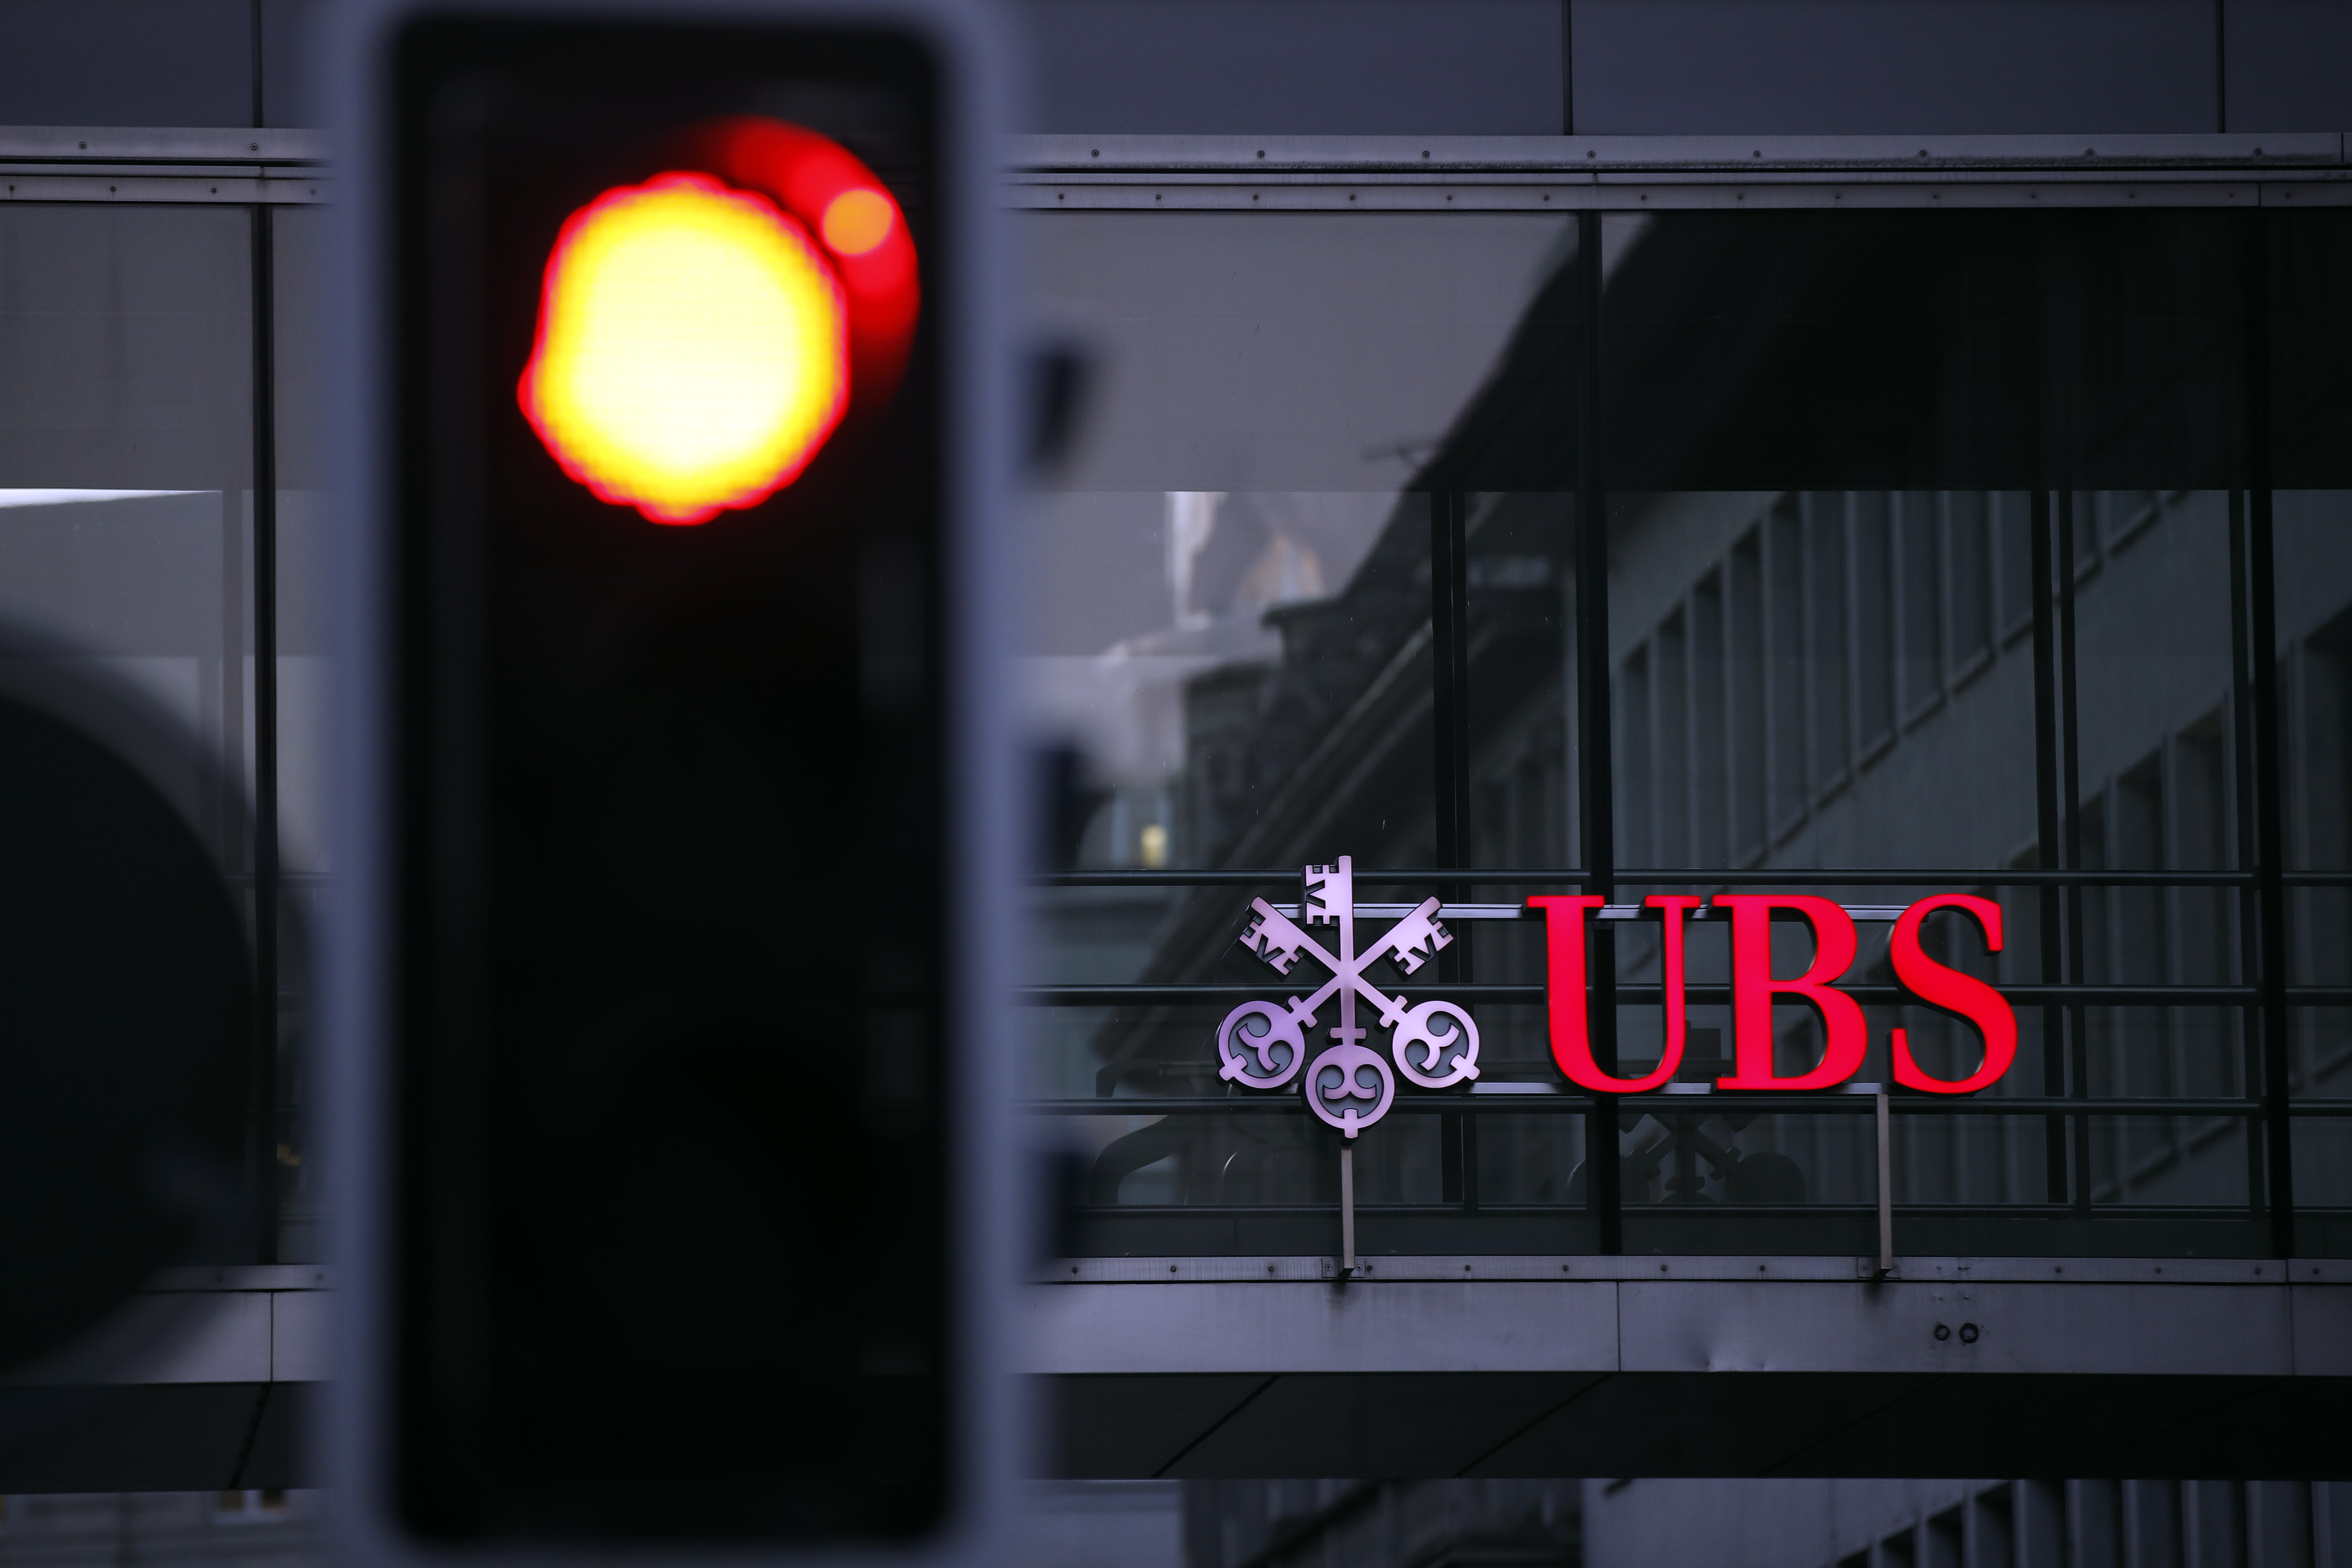 Swiss banking giant UBS to launch venture capital fund targeting fintechs